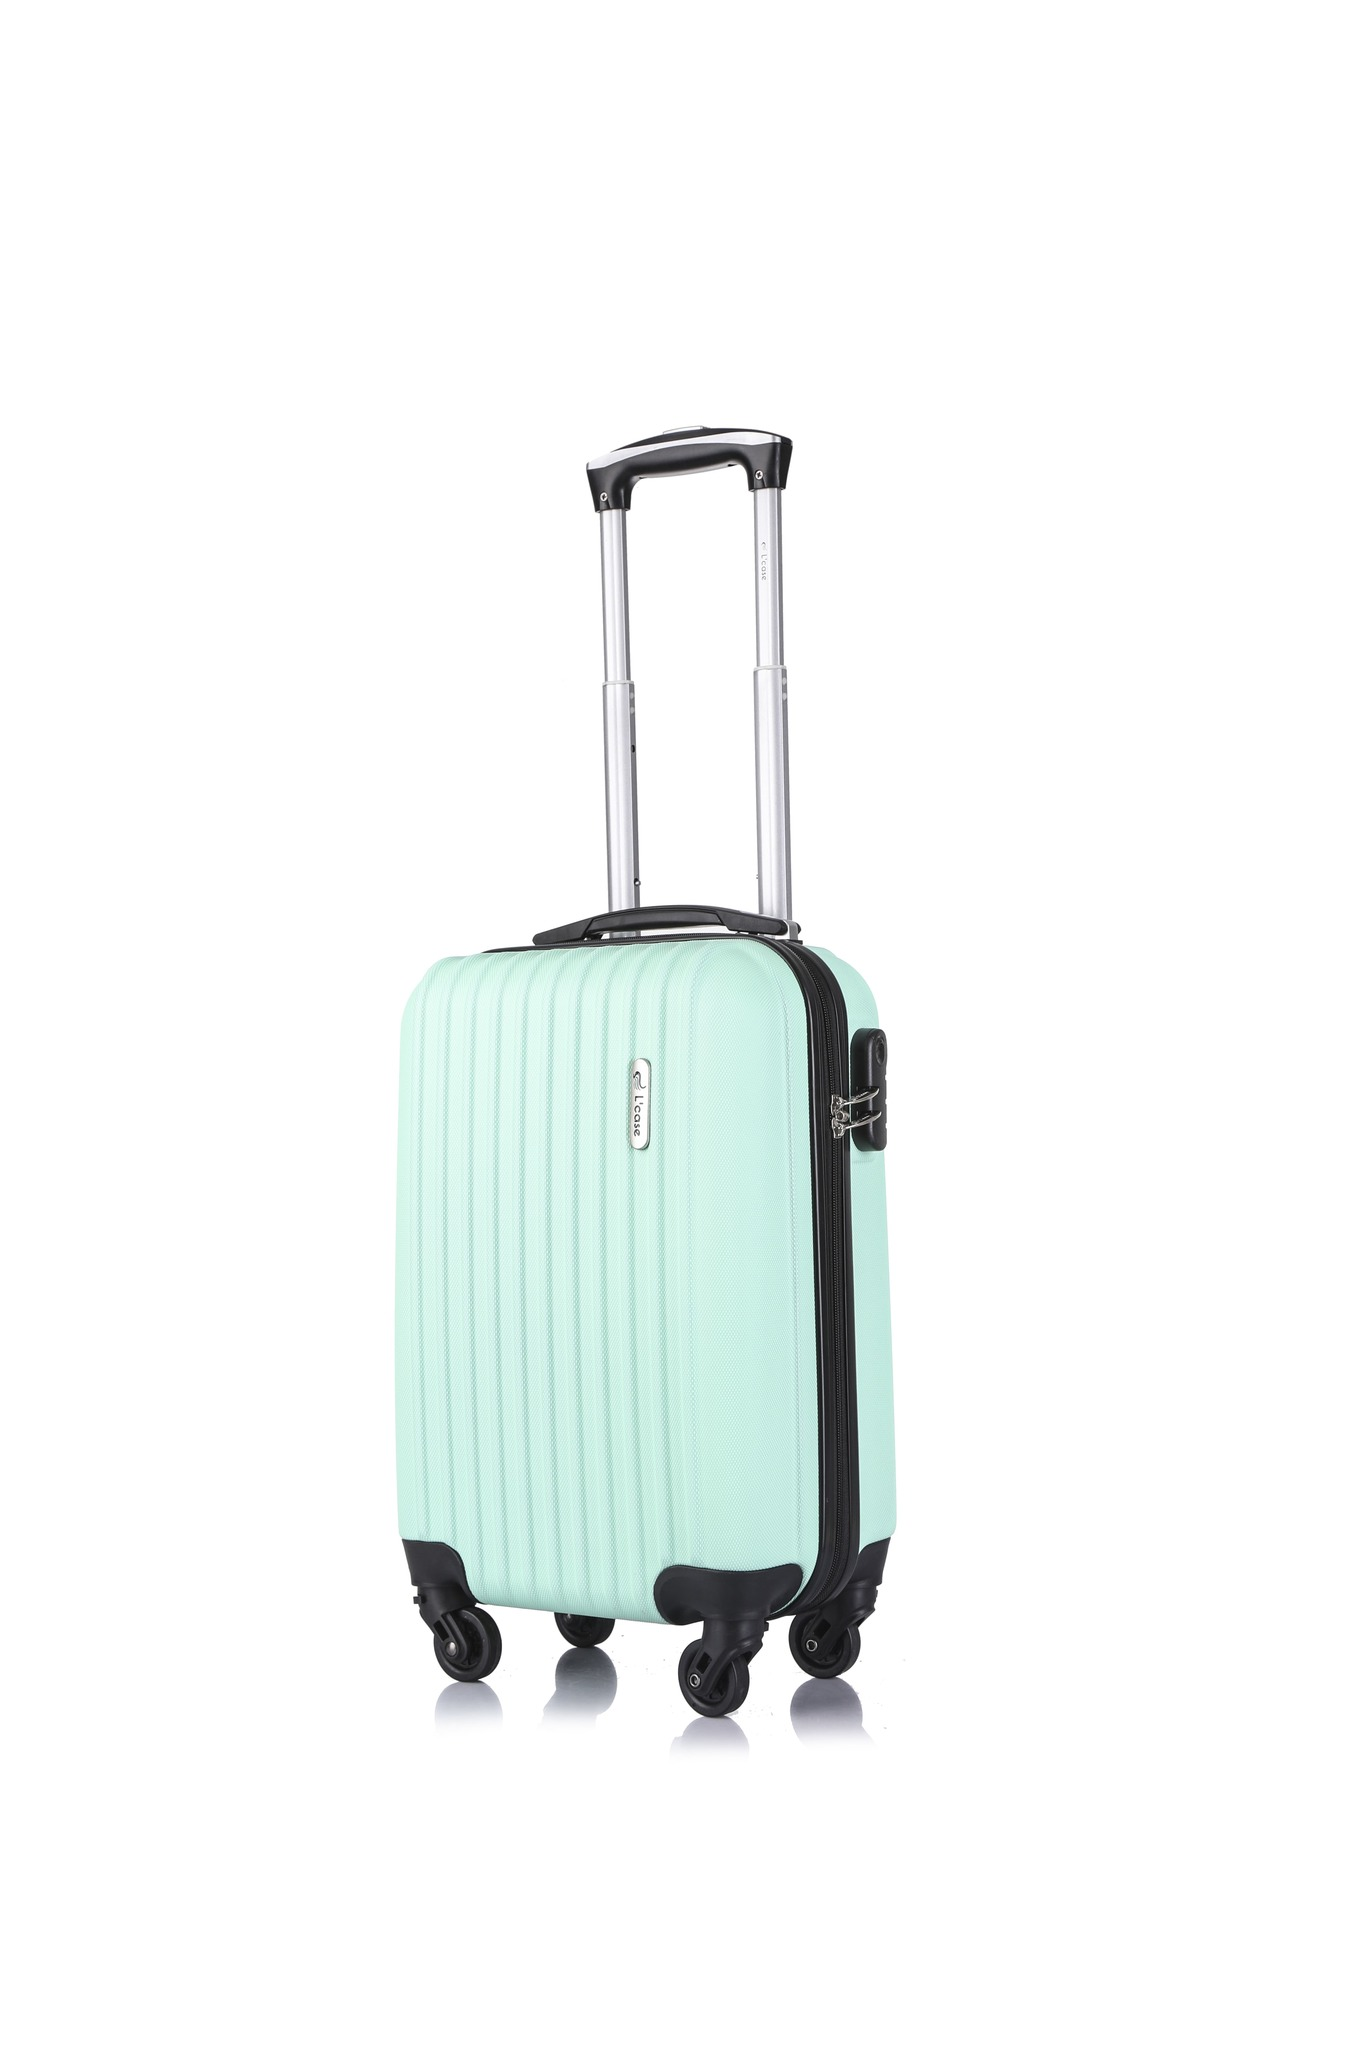 Suitcase Krabi Mint Suitcase Carry-on Luggage Classic Travel Trip Luggage Case Bag ABS+PC Suitcase Travel Trolley Luggage ABS+PC Suitcase Travel Trolley Luggage Business Business Trip